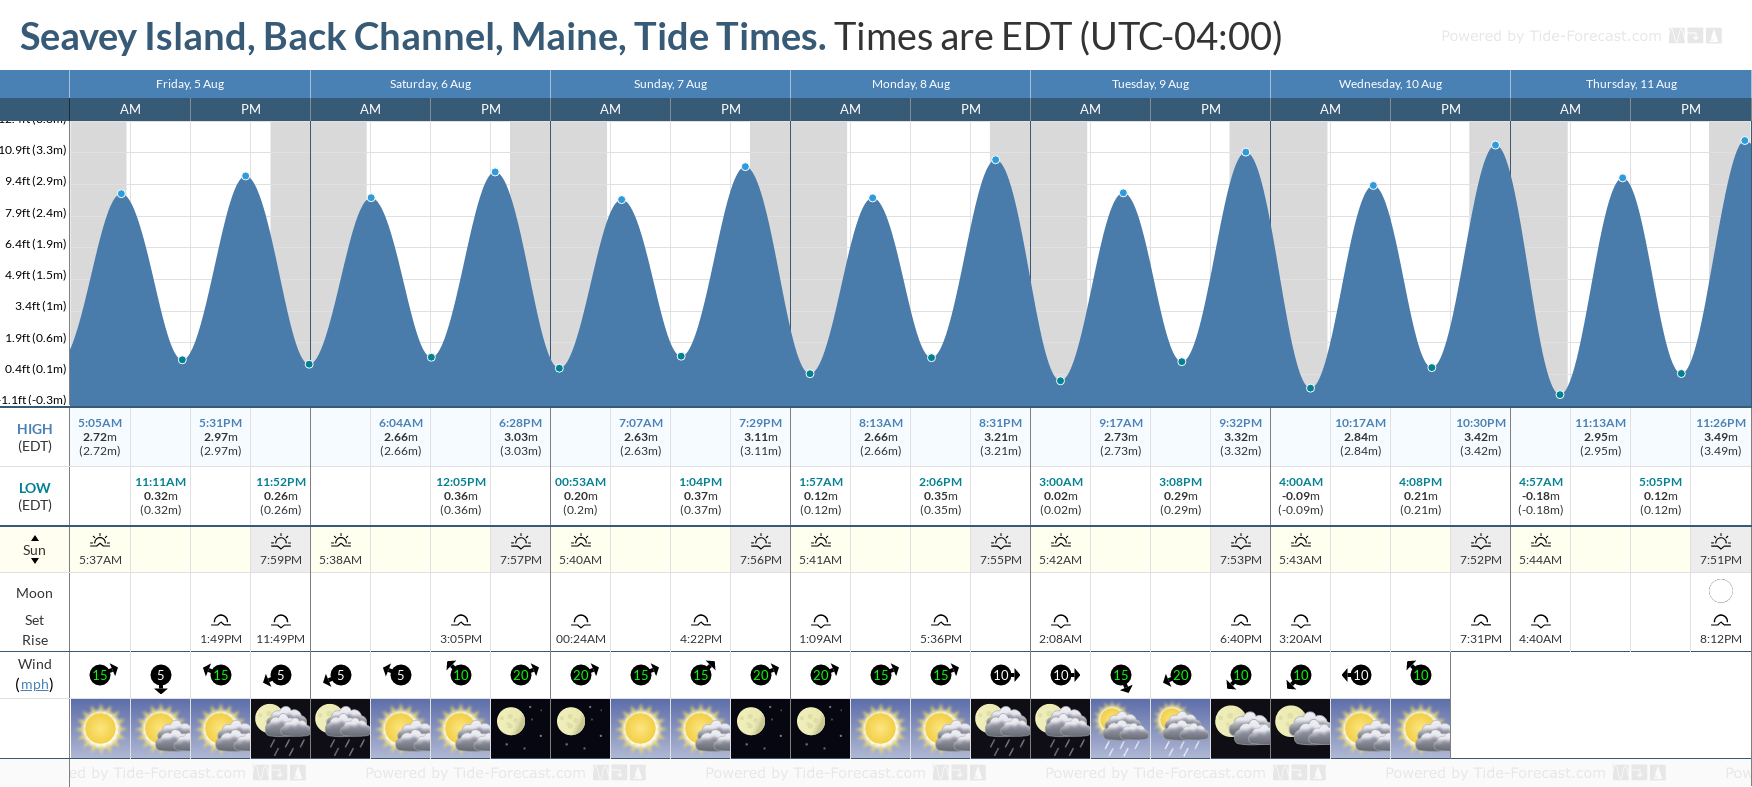 Seavey Island, Back Channel, Maine Tide Chart including high and low tide tide times for the next 7 days